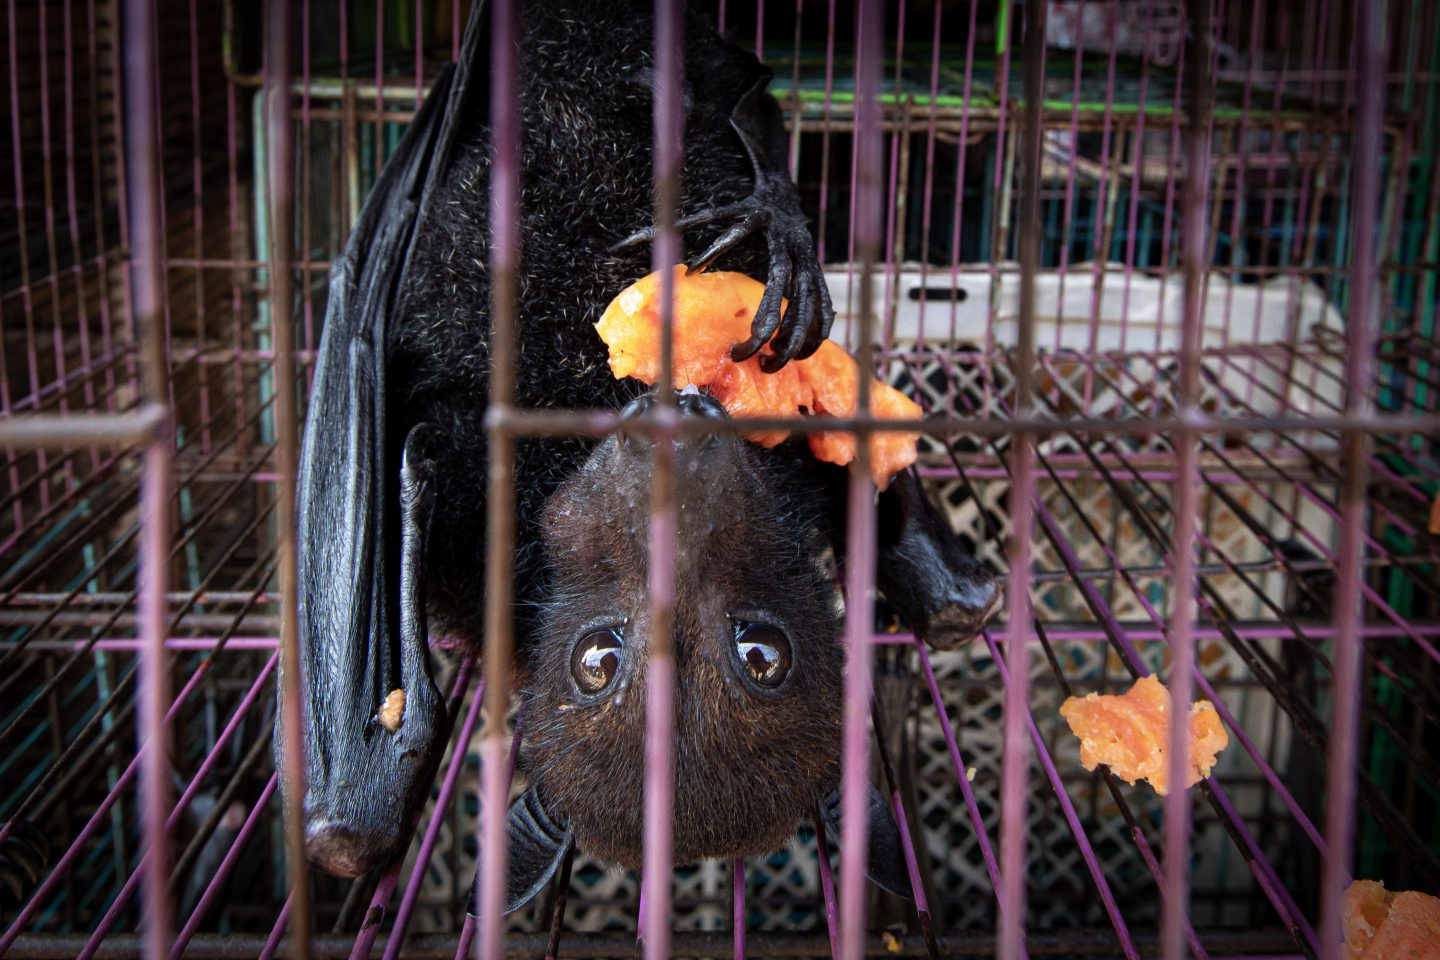 Cptive bat eating fruit, at a market in Indonesia.